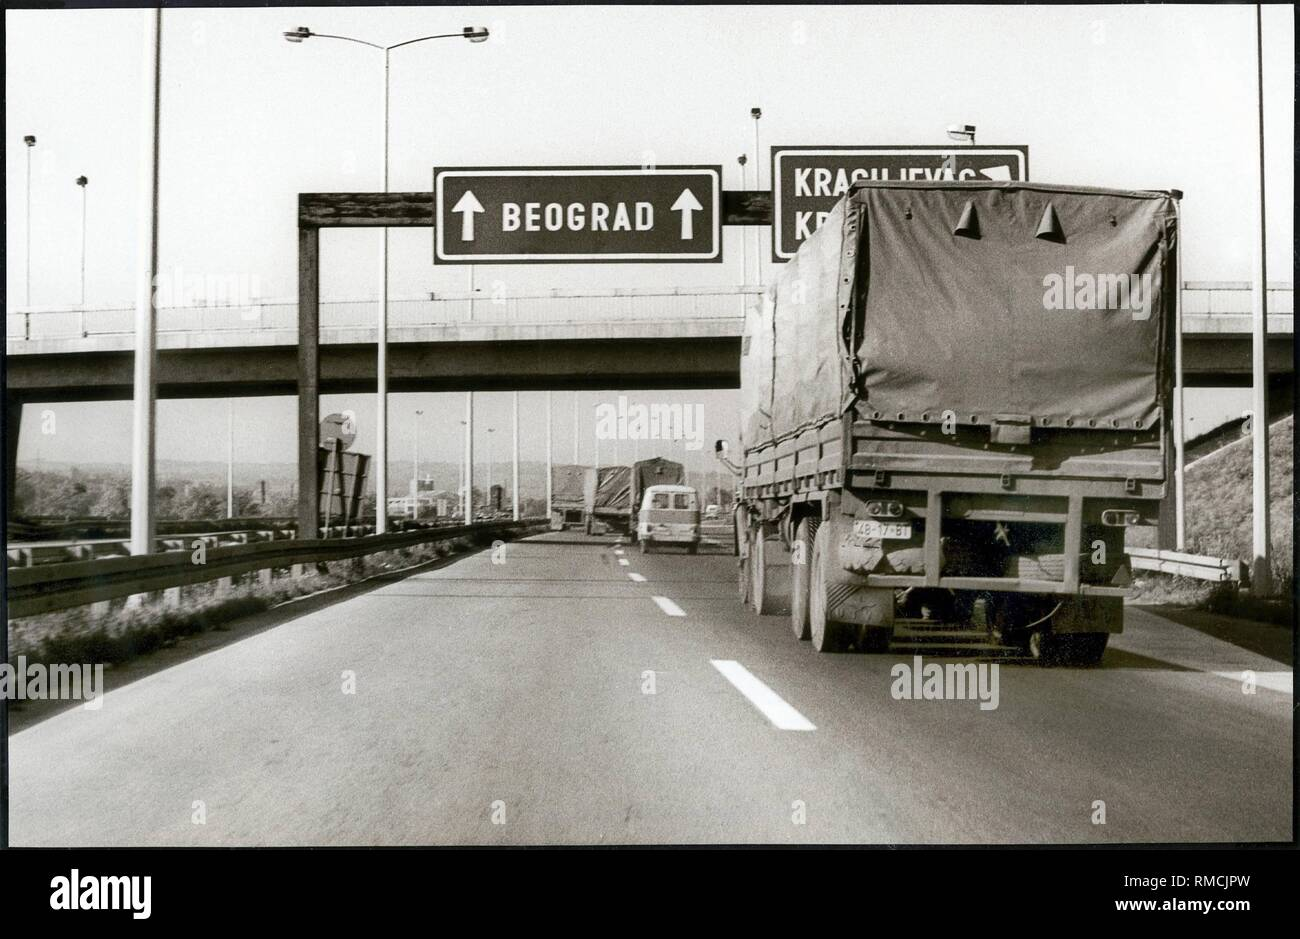 Yugoslavia Traffic On The Autoput On The Highway From Zagreb To Greece Three Lane Motorway With Breakdown Lane This New Road Is In Conformity With Our Highways October 1982 Stock Photo Alamy